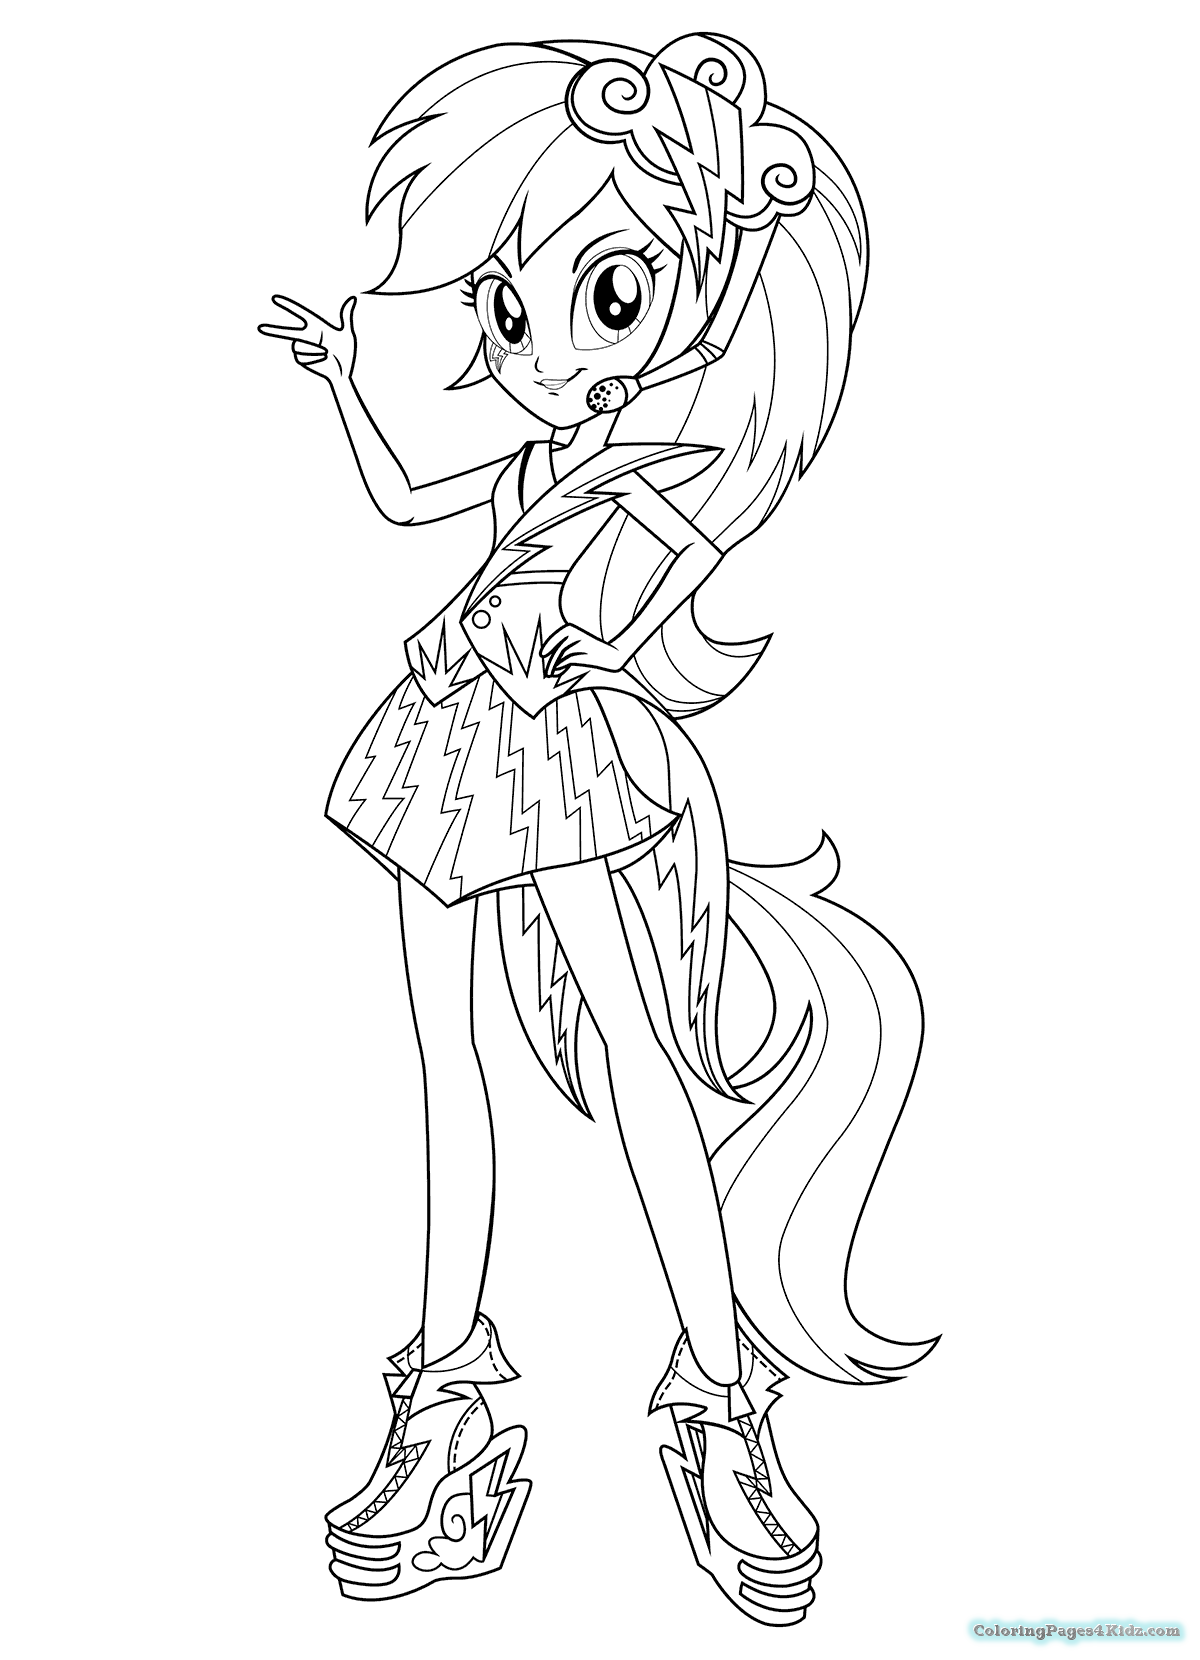 applejack equestria girls coloring pages my little pony equestria girls applejack printables girls pages applejack equestria coloring